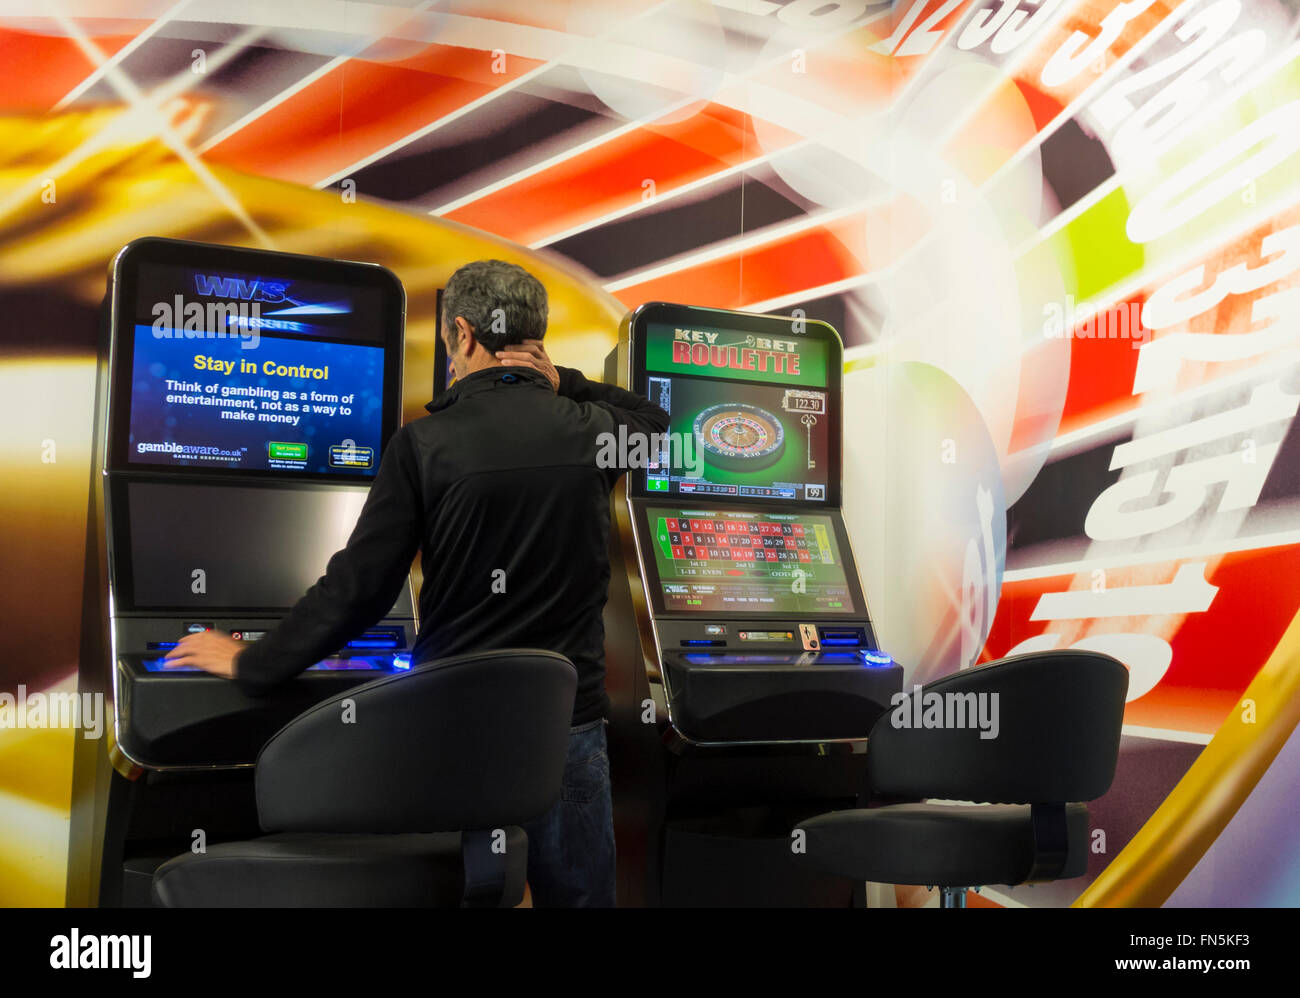 Mature man using fixed odds betting terminal showing stay in control message on screen in Bookmakers. England, UK Stock Photo